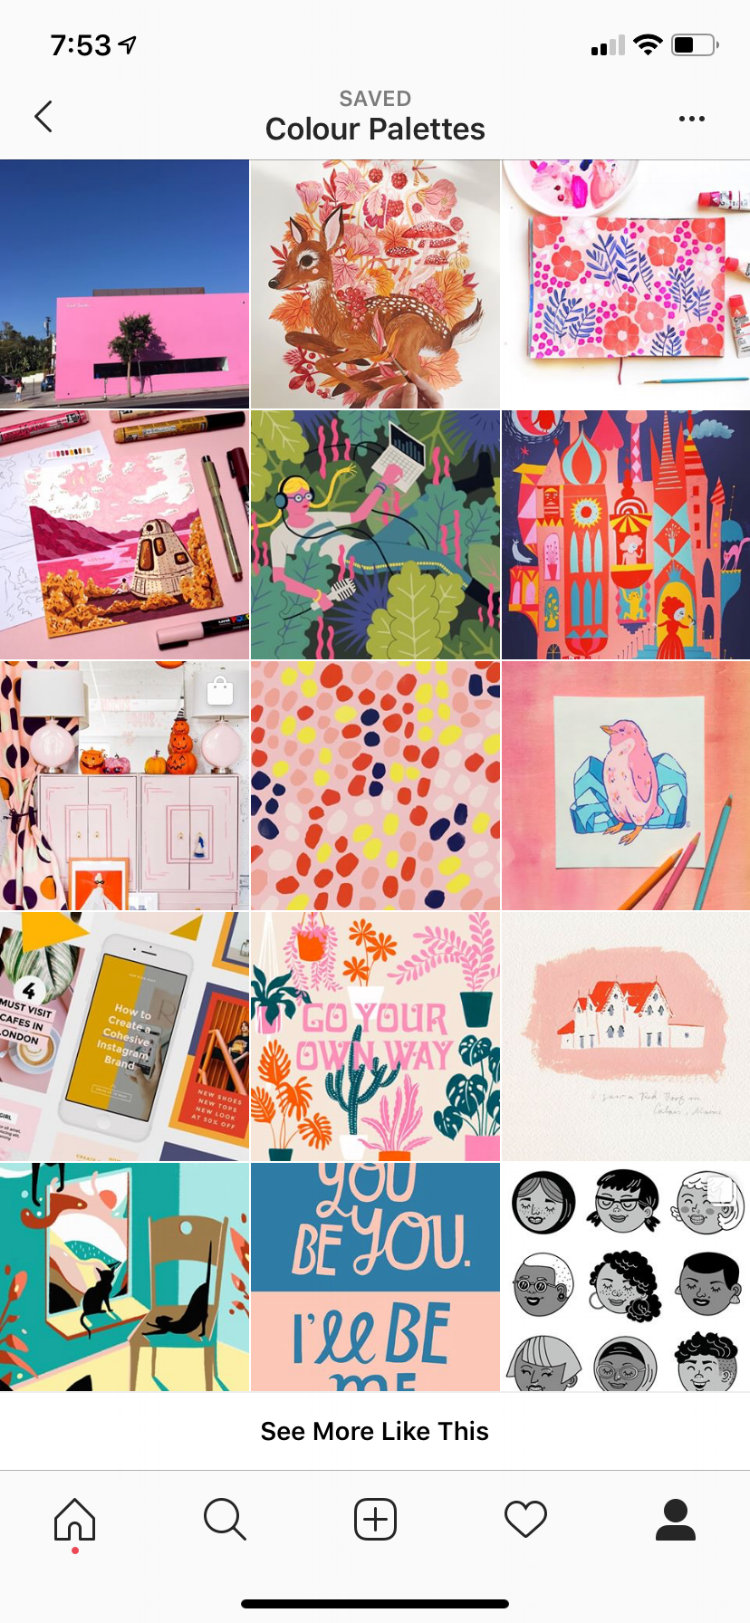 This is a screenshot of the Instagram posts I saved for colour palette inspiration. There are some really great artists here, you should check them all out! Image credits left to right, top to bottom:    @watsonpayne   ,    @oanabefort   ,    @melaniemilesdesign   ,    @alikiful   ,    @brwnpaperbag   ,    @miraparadies   ,    @spoonflower   ,    @pantone   ,    @cheru_illustration   ,    @latermedia   ,    @shopbando   ,    @emilyisabella   ,    @nicolo_canova   ,    @lisacongdon   ,    @salini.banana